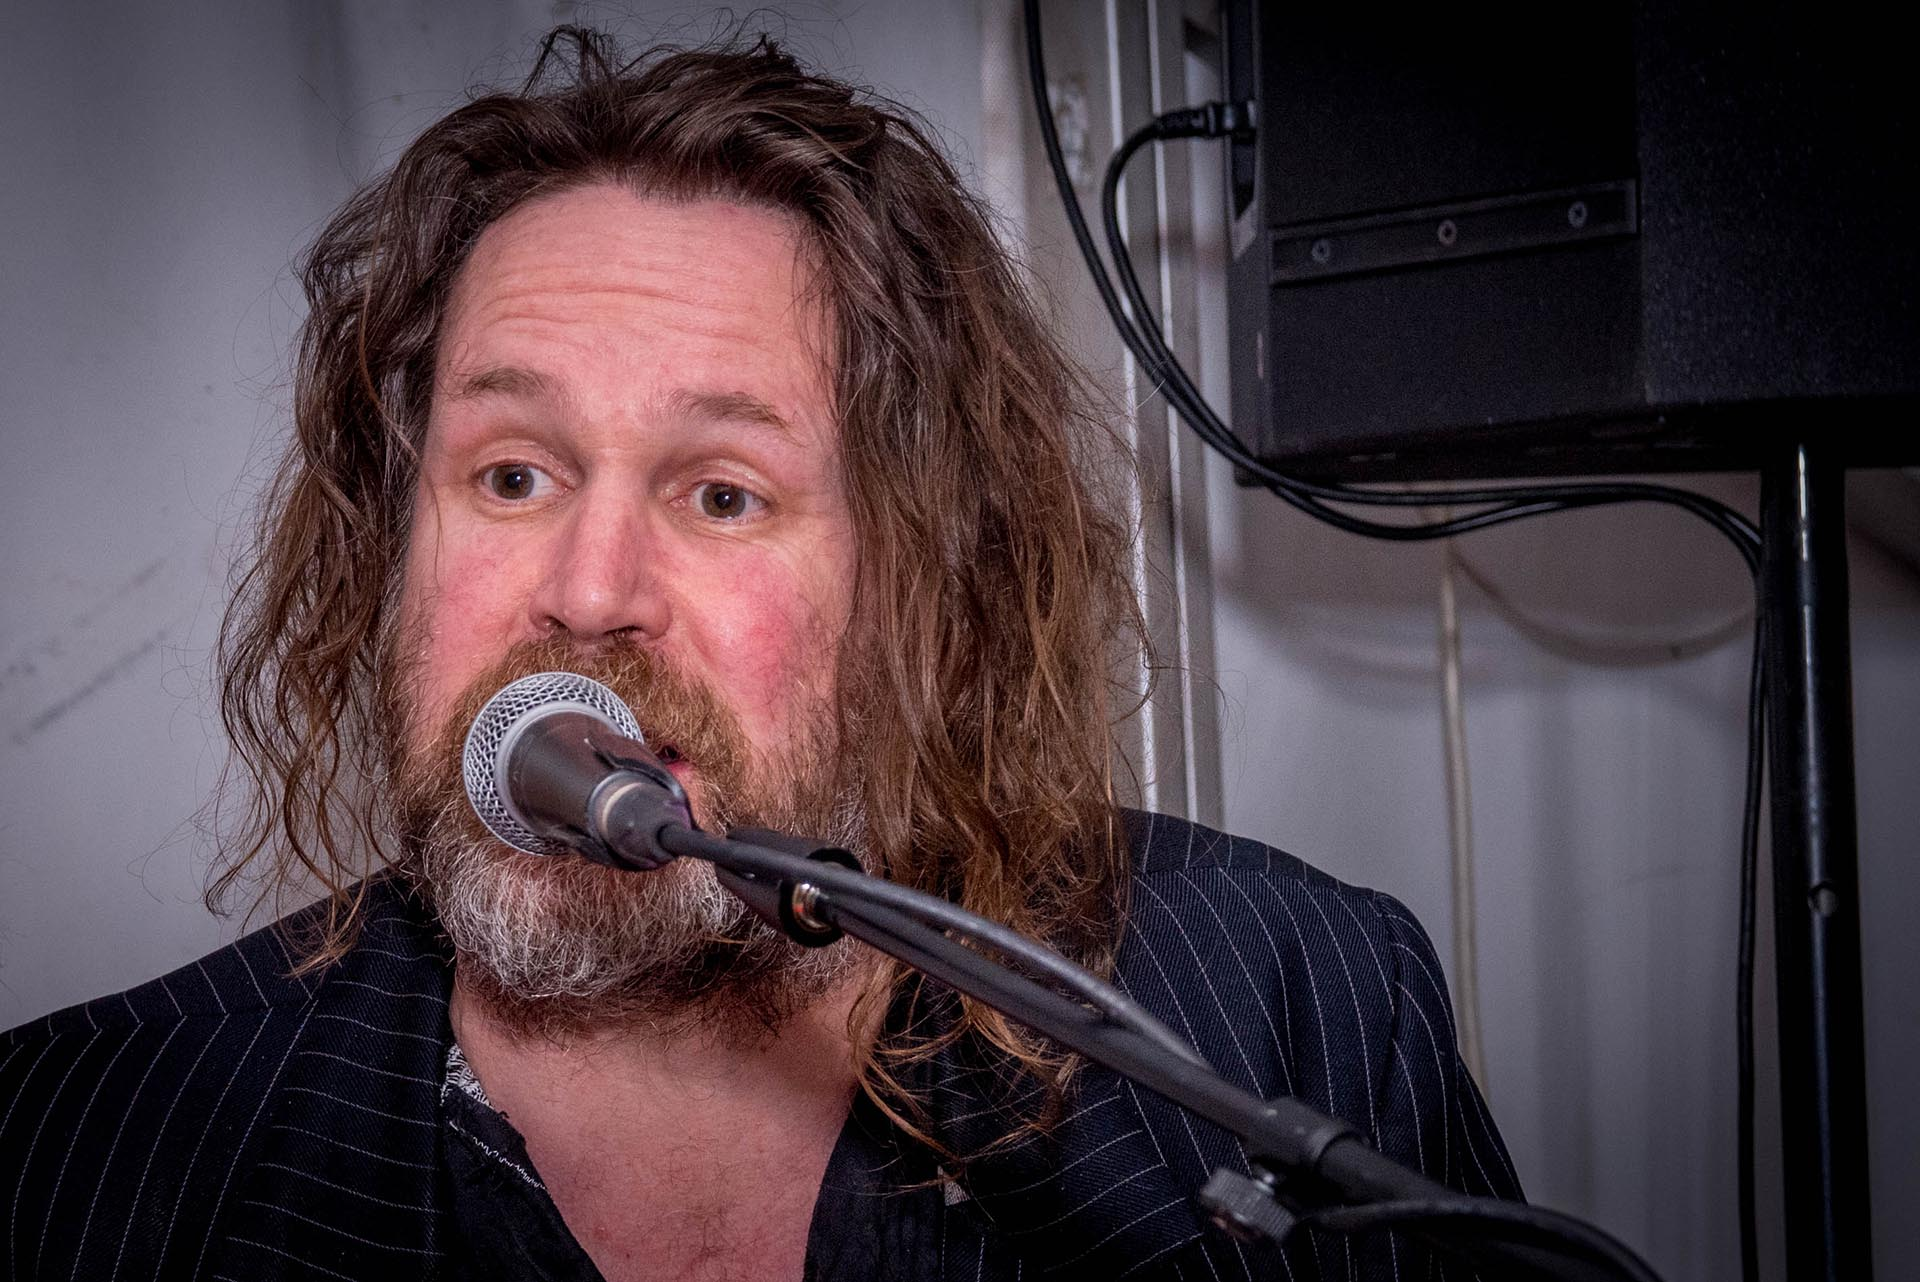 Liam Ó Maonlaí of Hothouse Flowers performs an intimate set.